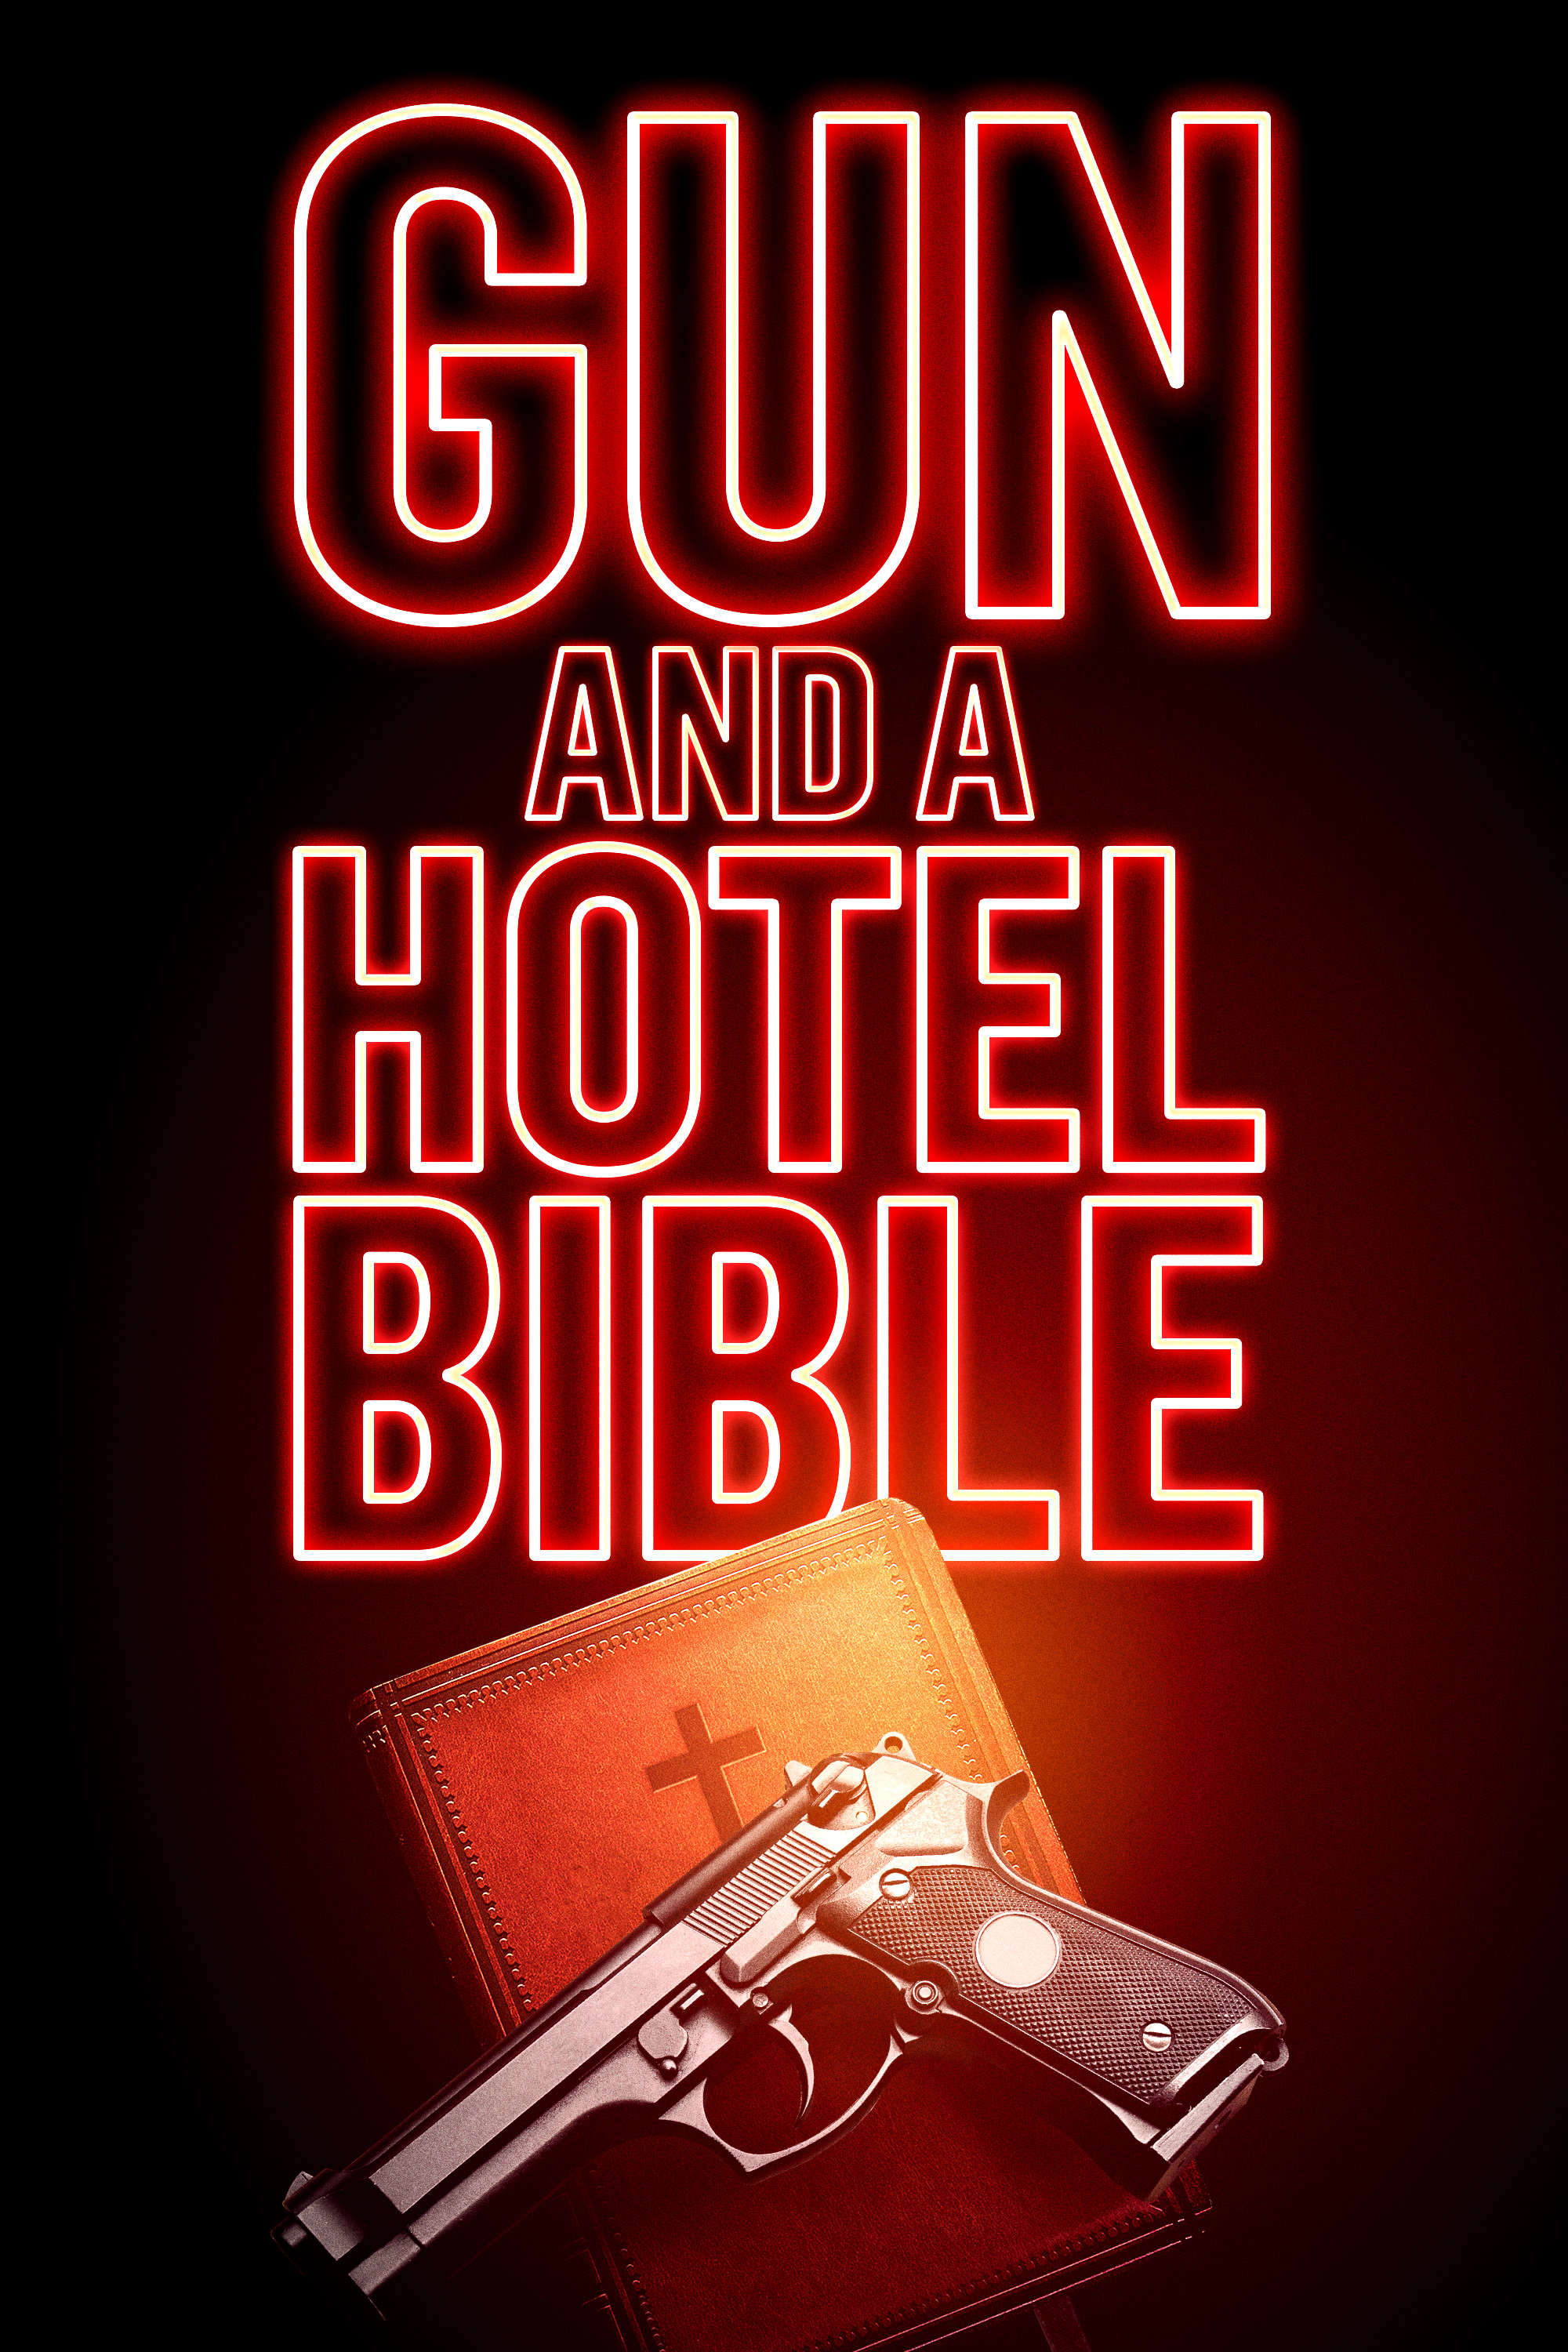 Gun and a Hotel Bible  Watch Movies Online